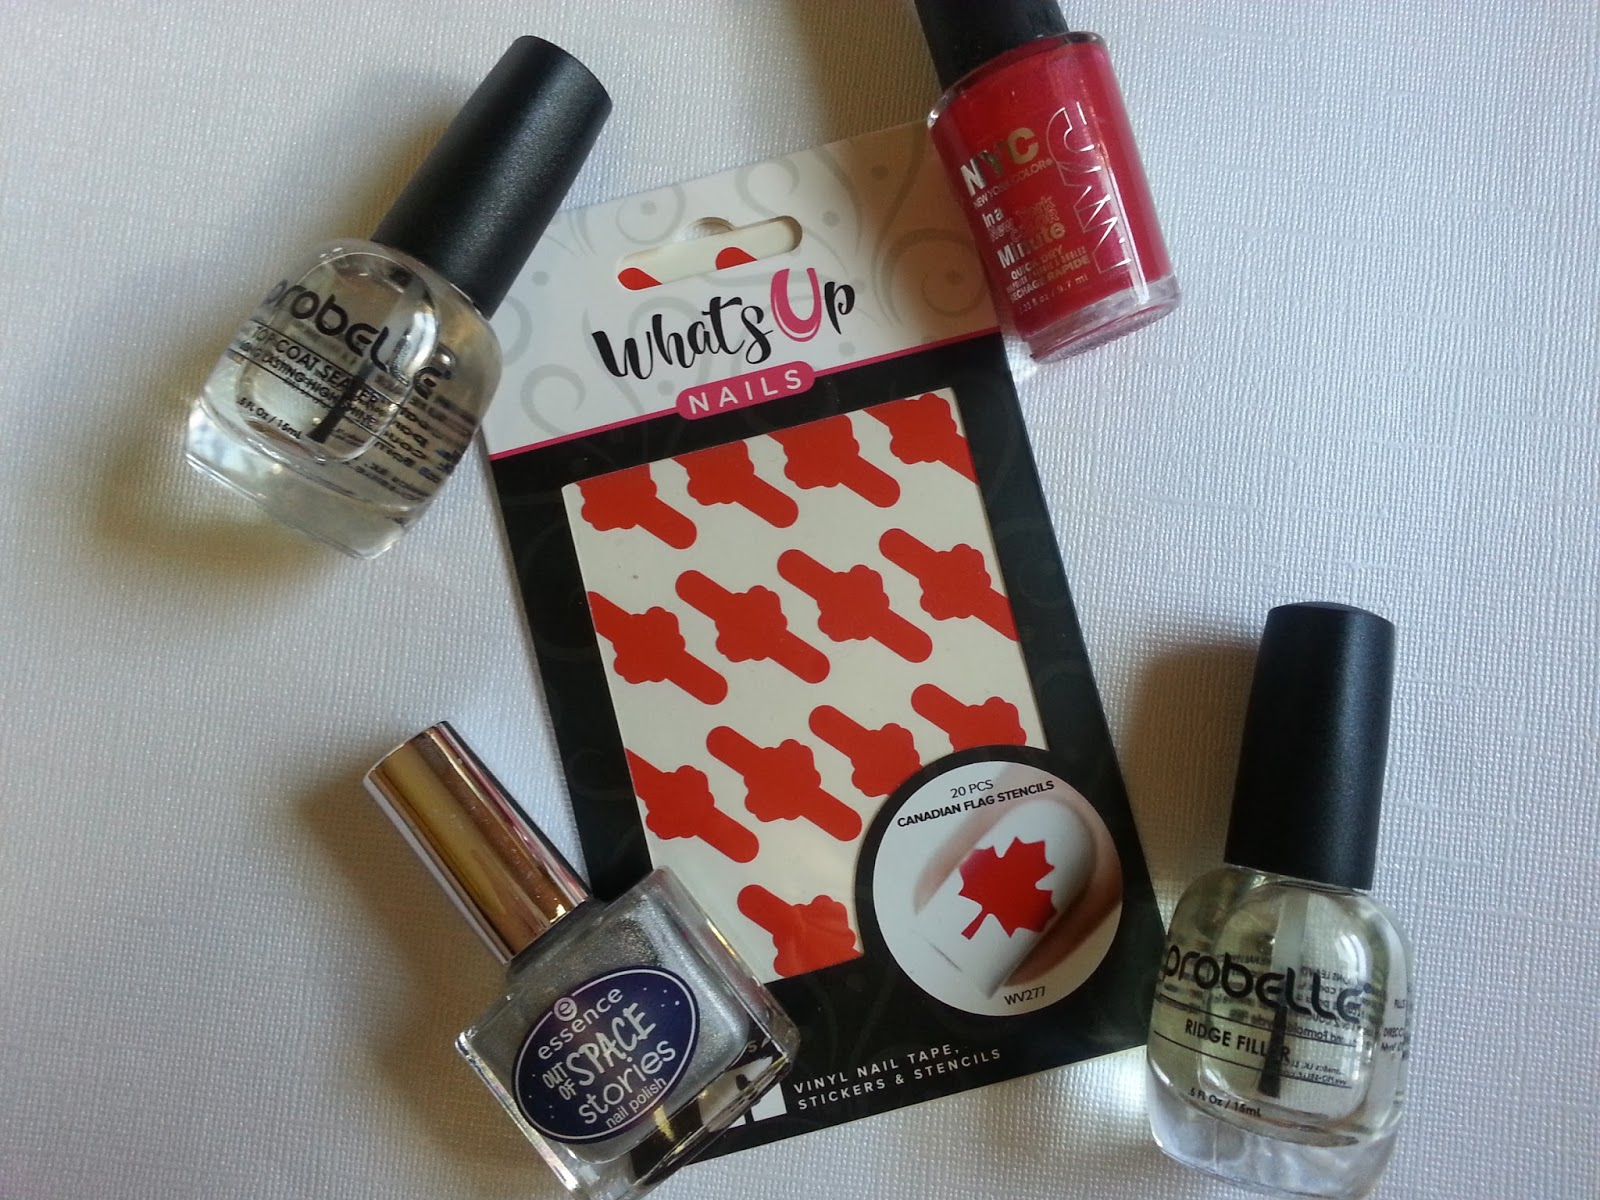 Anyway With Canada Day Coming Up Soon July 1st I Decided Wanted In On The Themed Nails And This Is What Came